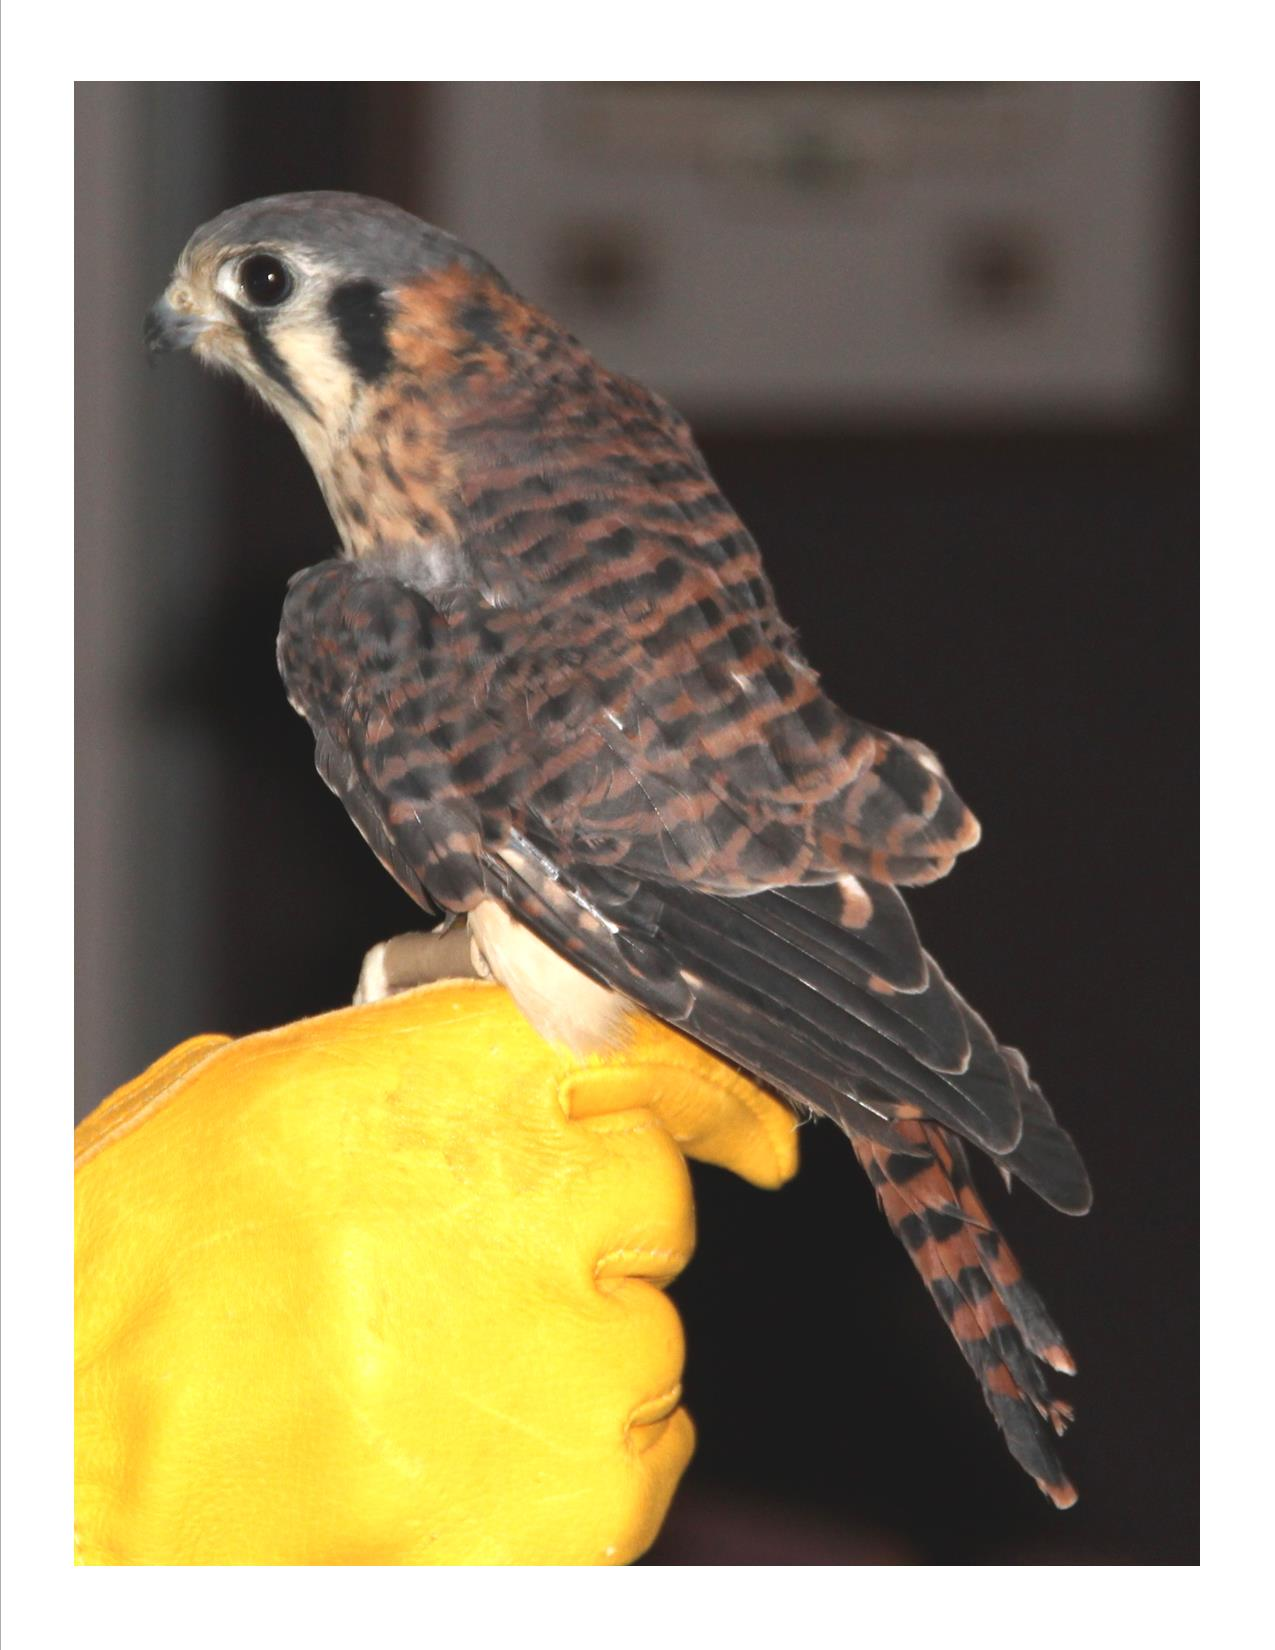 Penny is a beautiful female American Kestrel, a small falcon. Kestrels are extremely agile in flight and hav many special adaptation to help them survive. Her hunting techniques are unique, as are her adaptations that help ward off larger hawks from stealing her food.